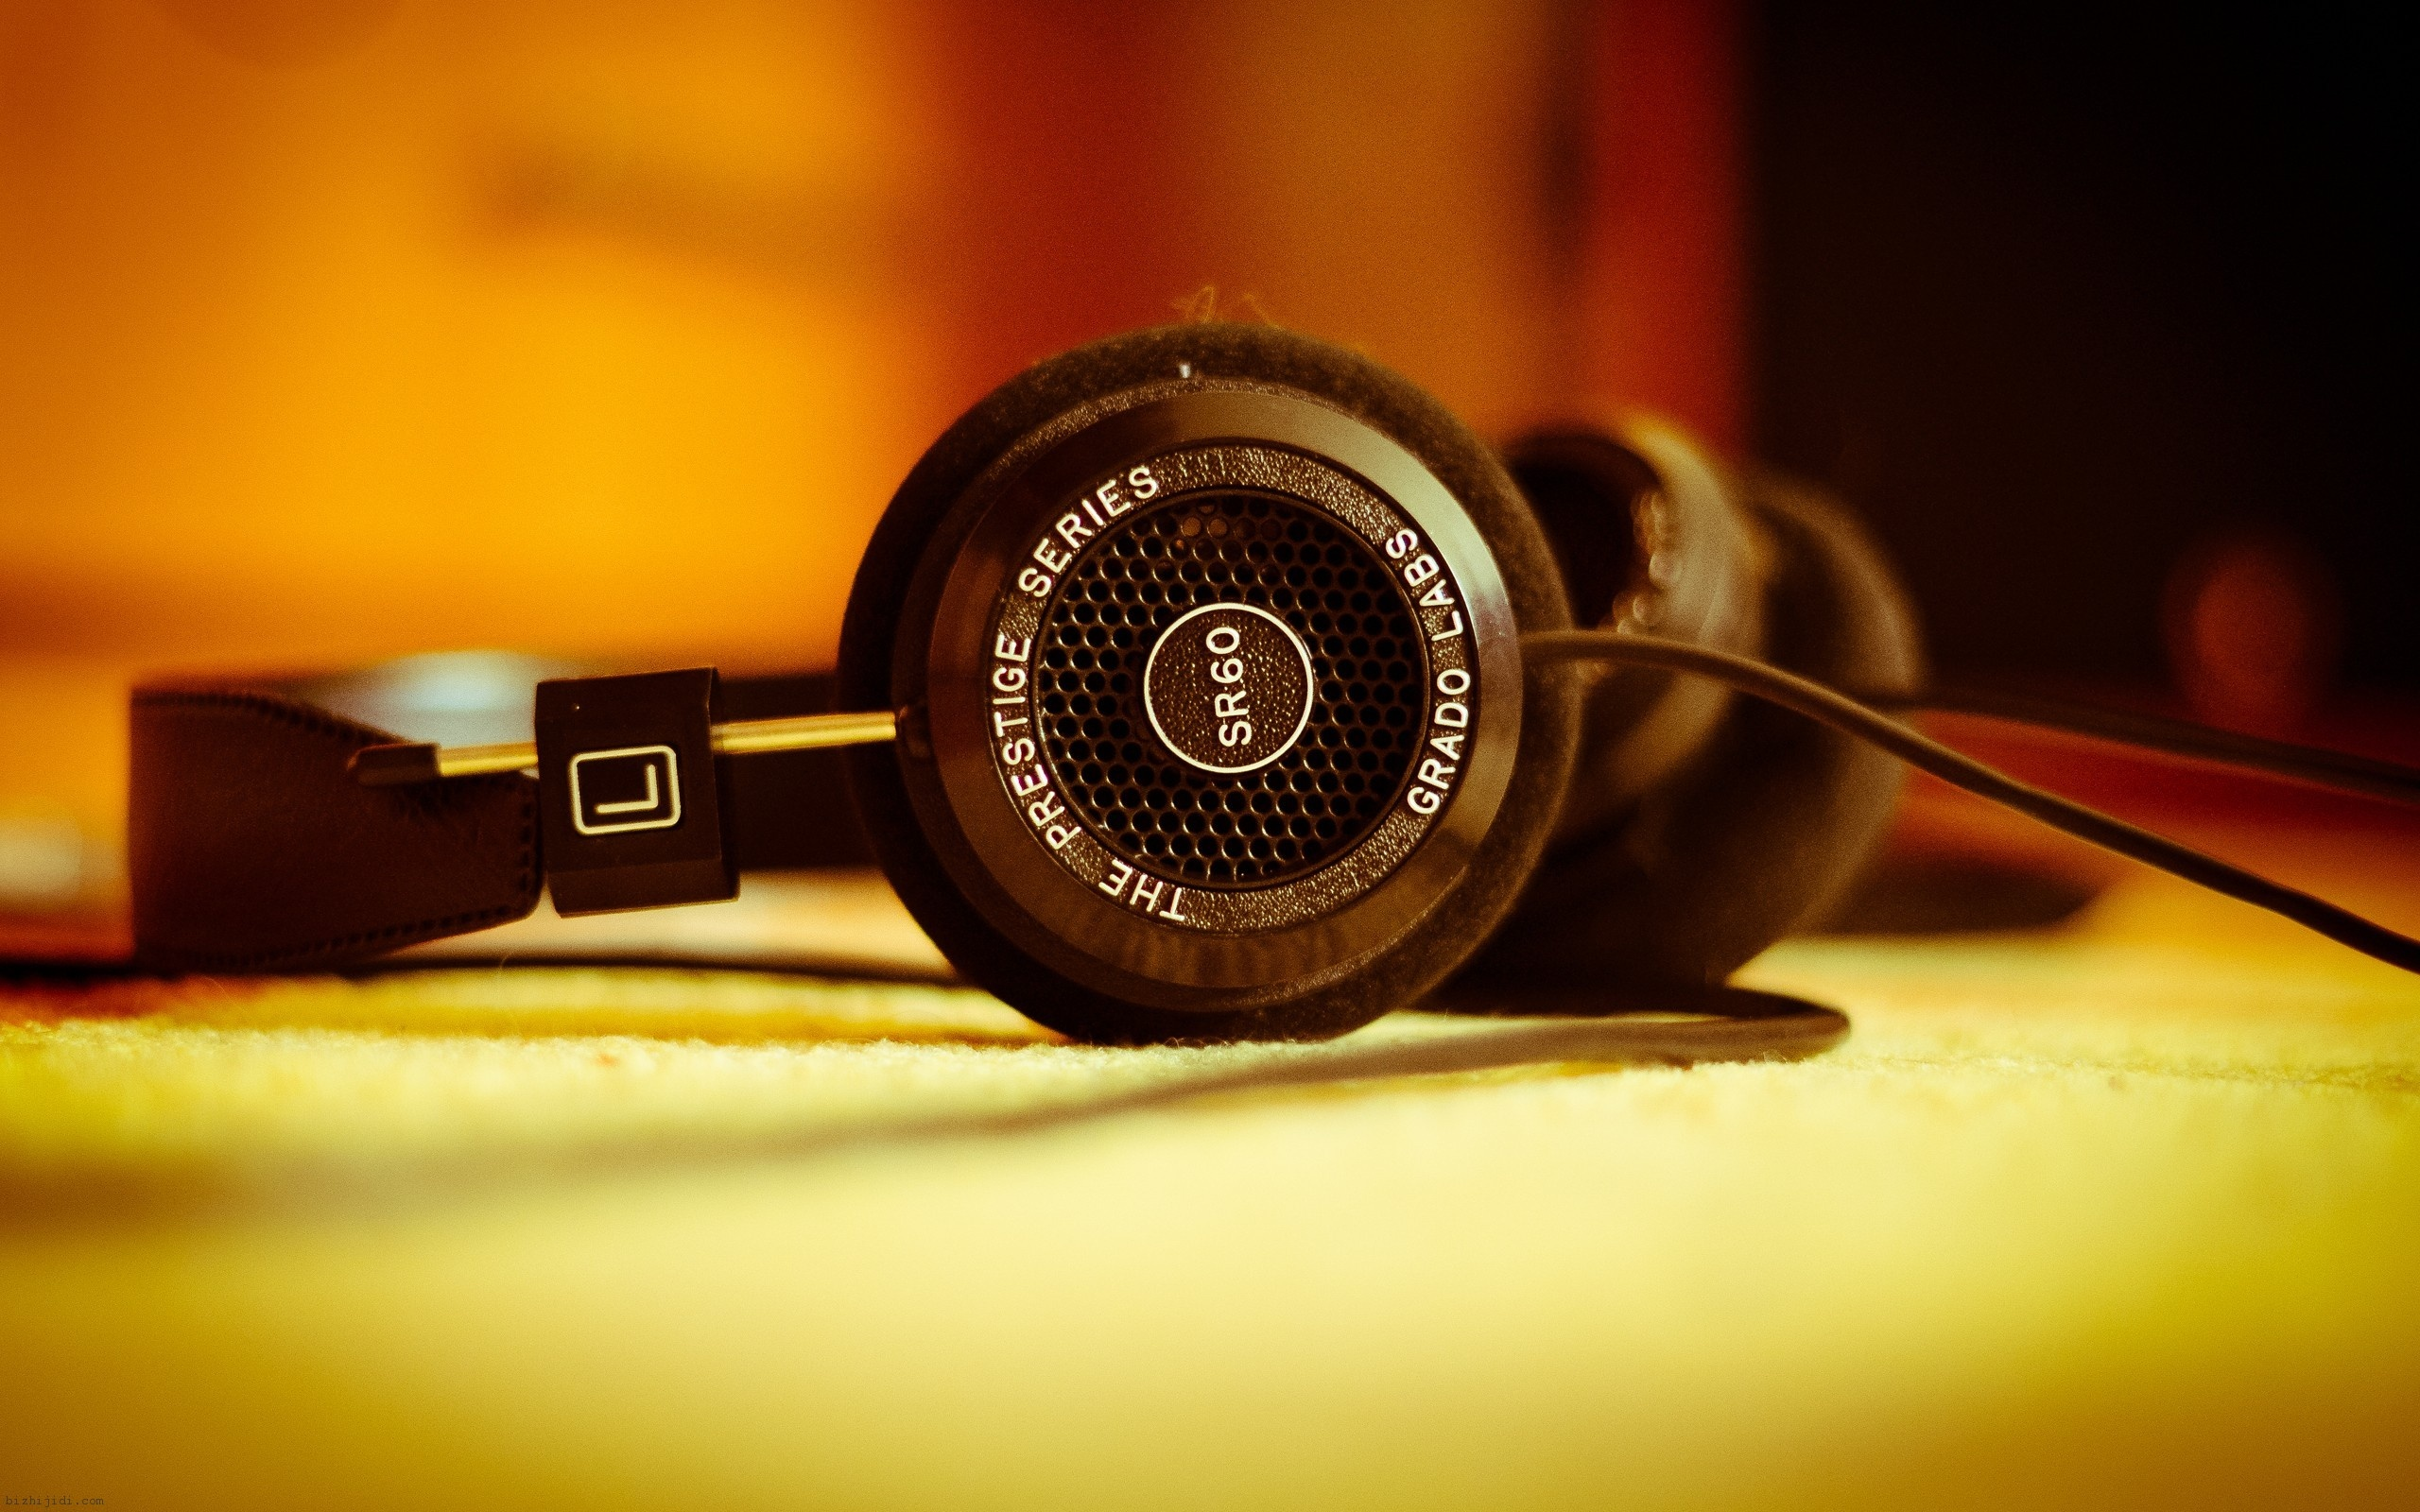 Headphones Music Grado Wallpapers - 2560x1600 - 1198398